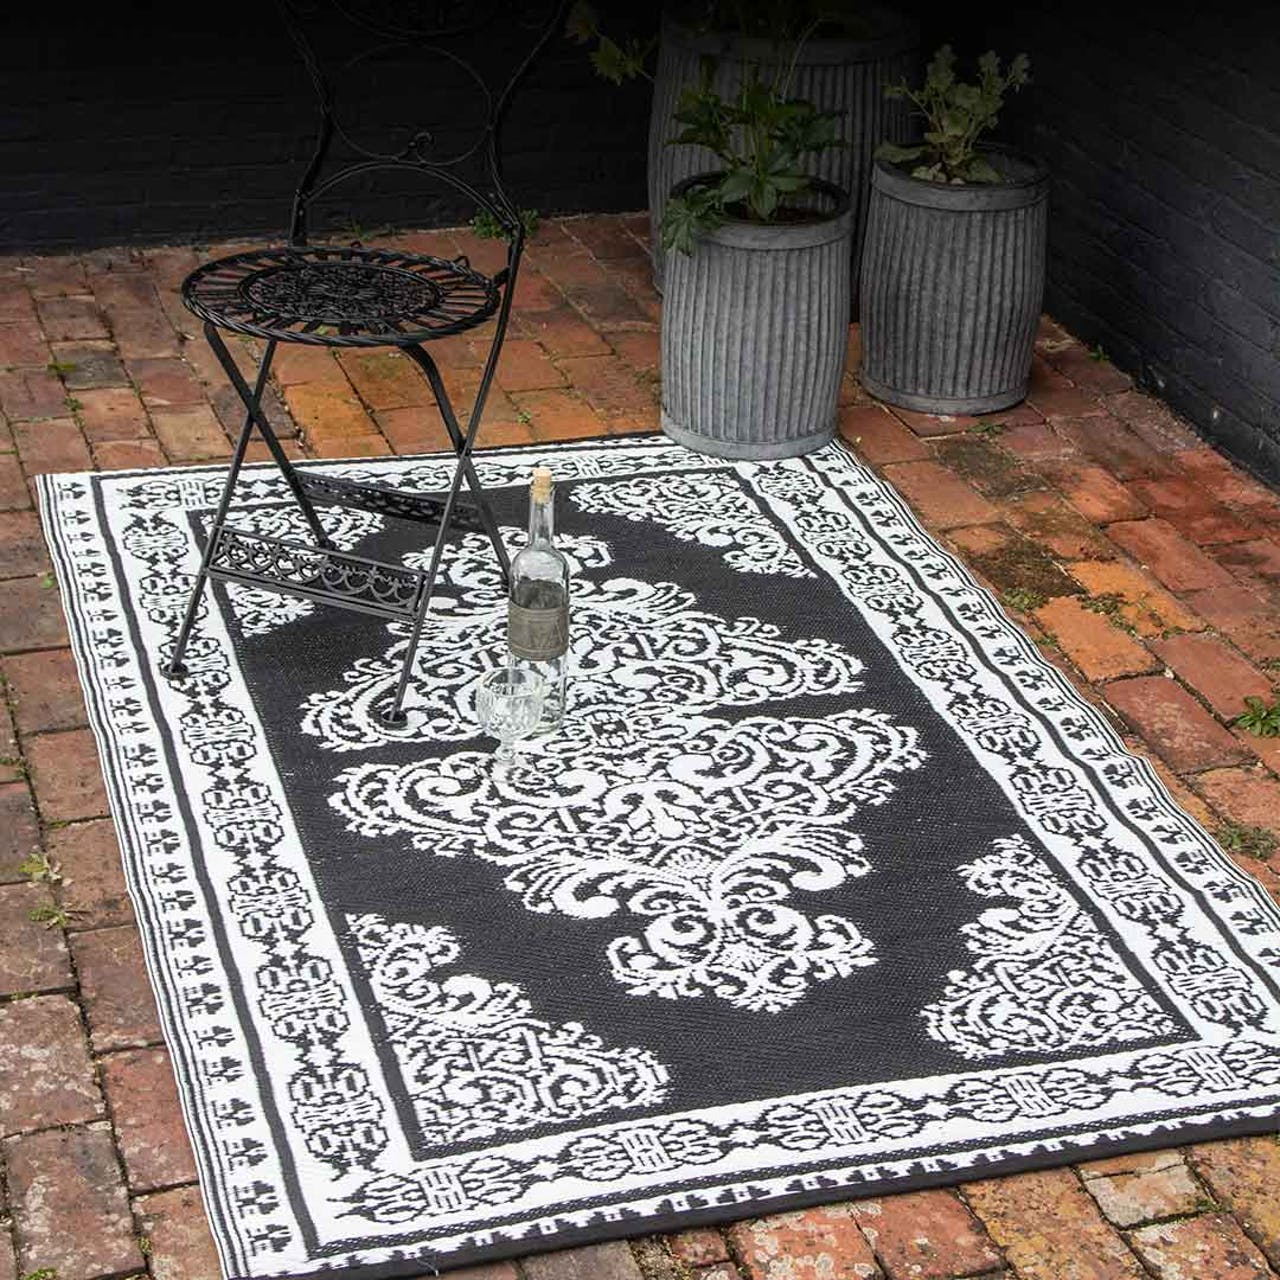 intricate patterned black and white rug outdoors